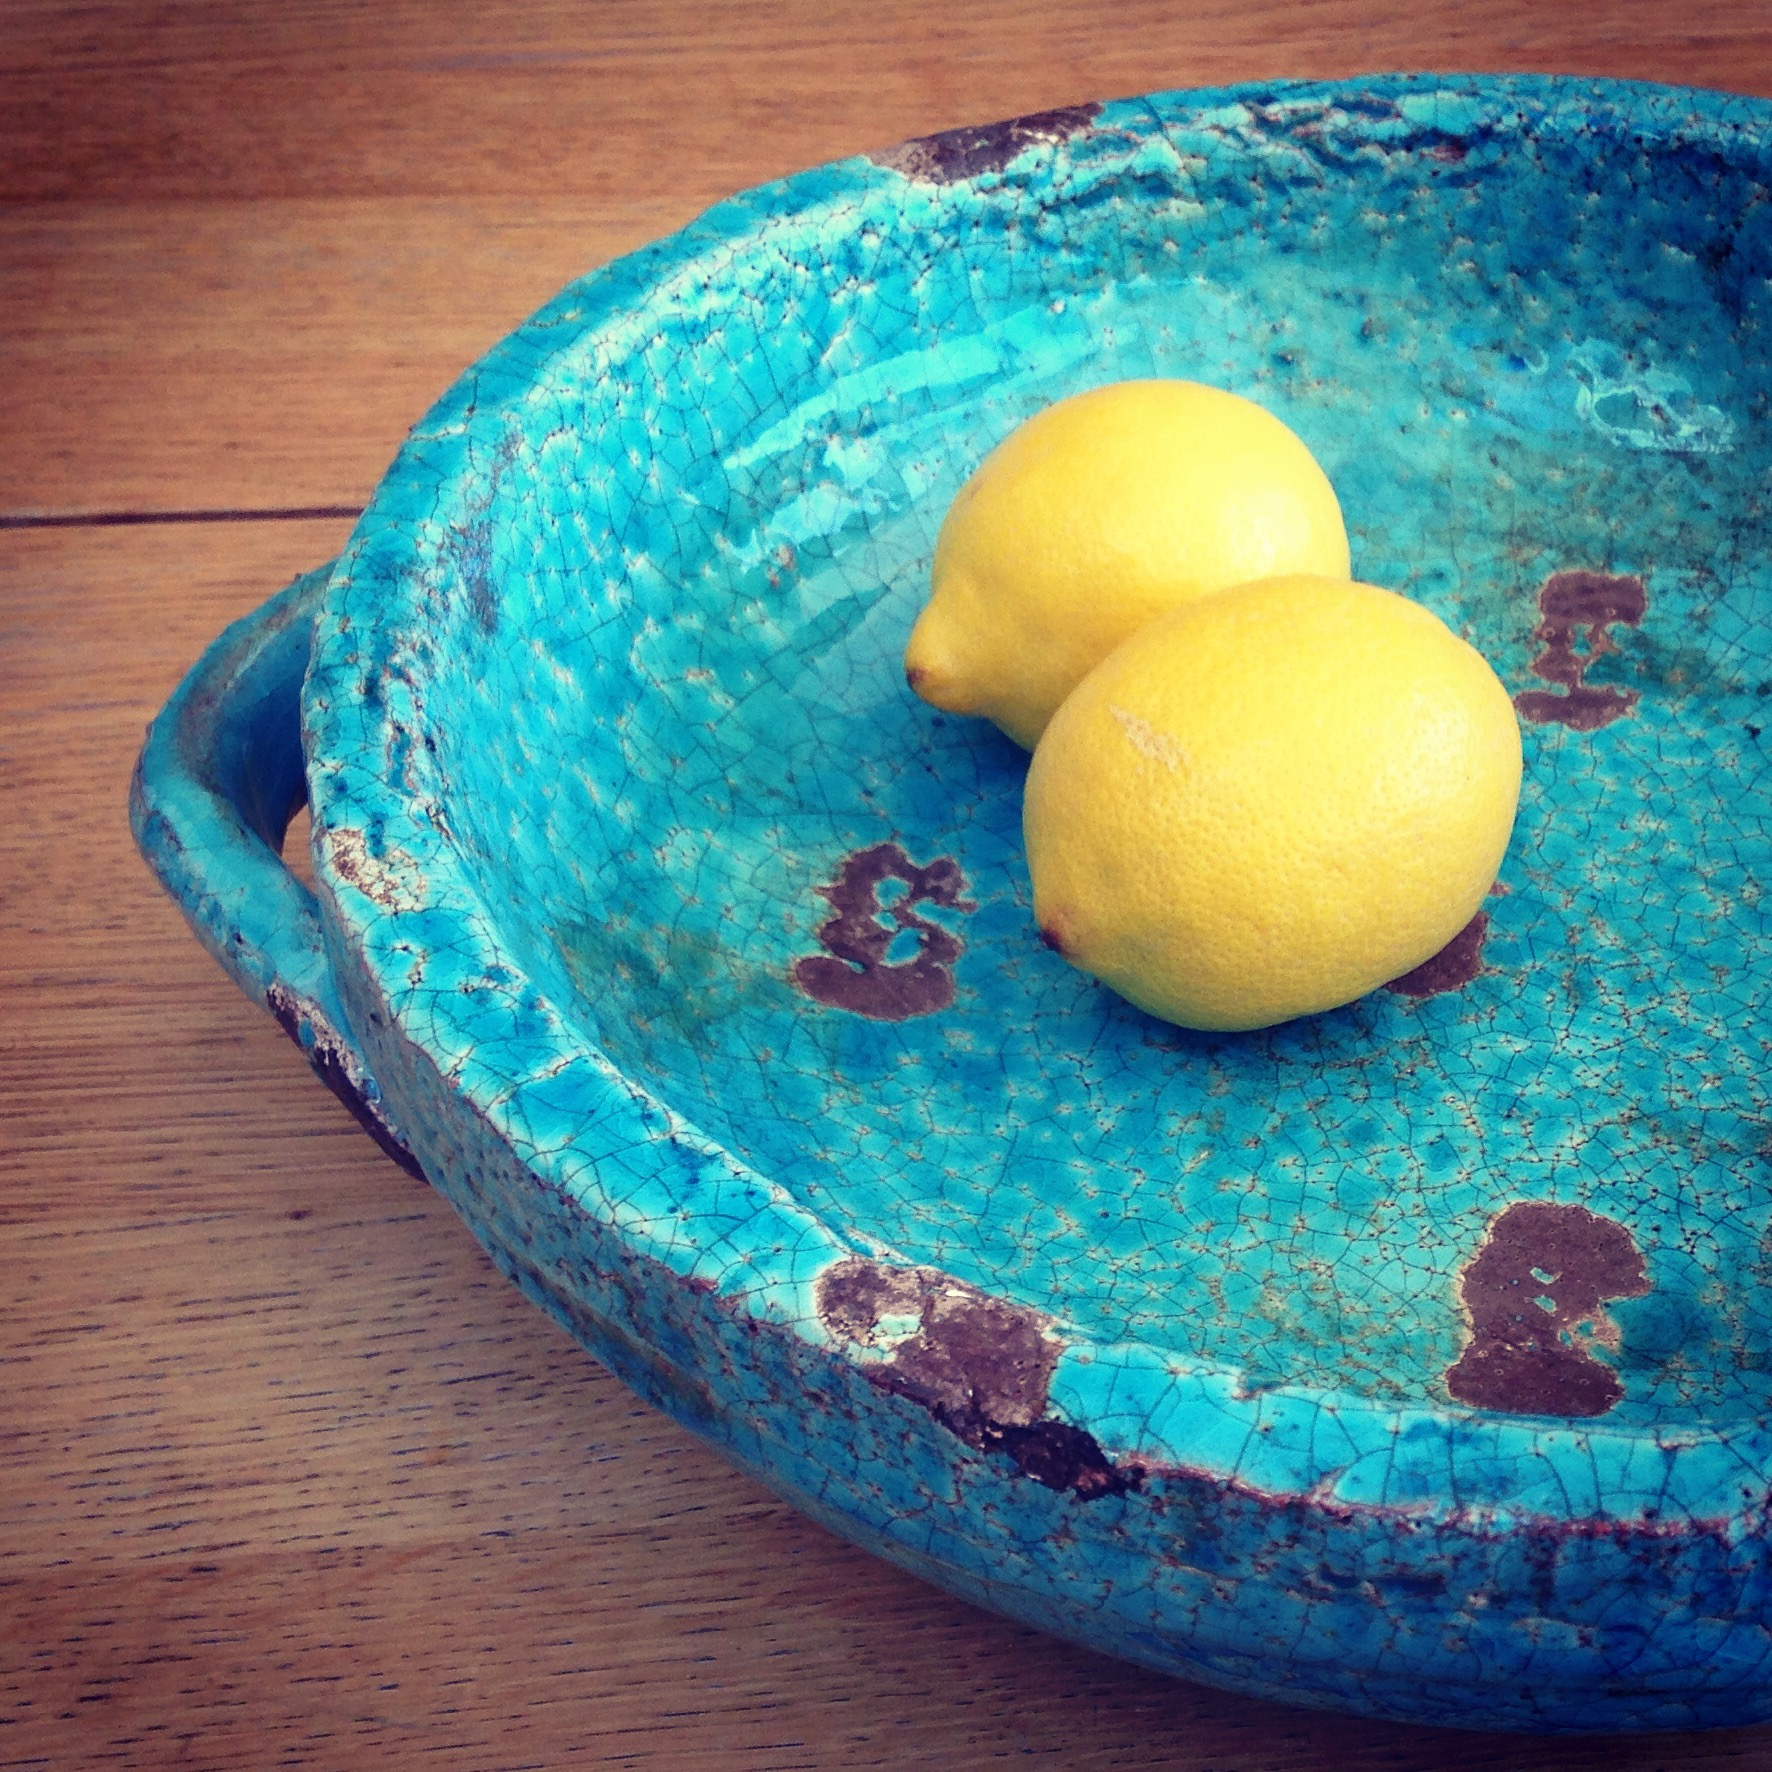 Beautiful Greek Bowl & Lemons